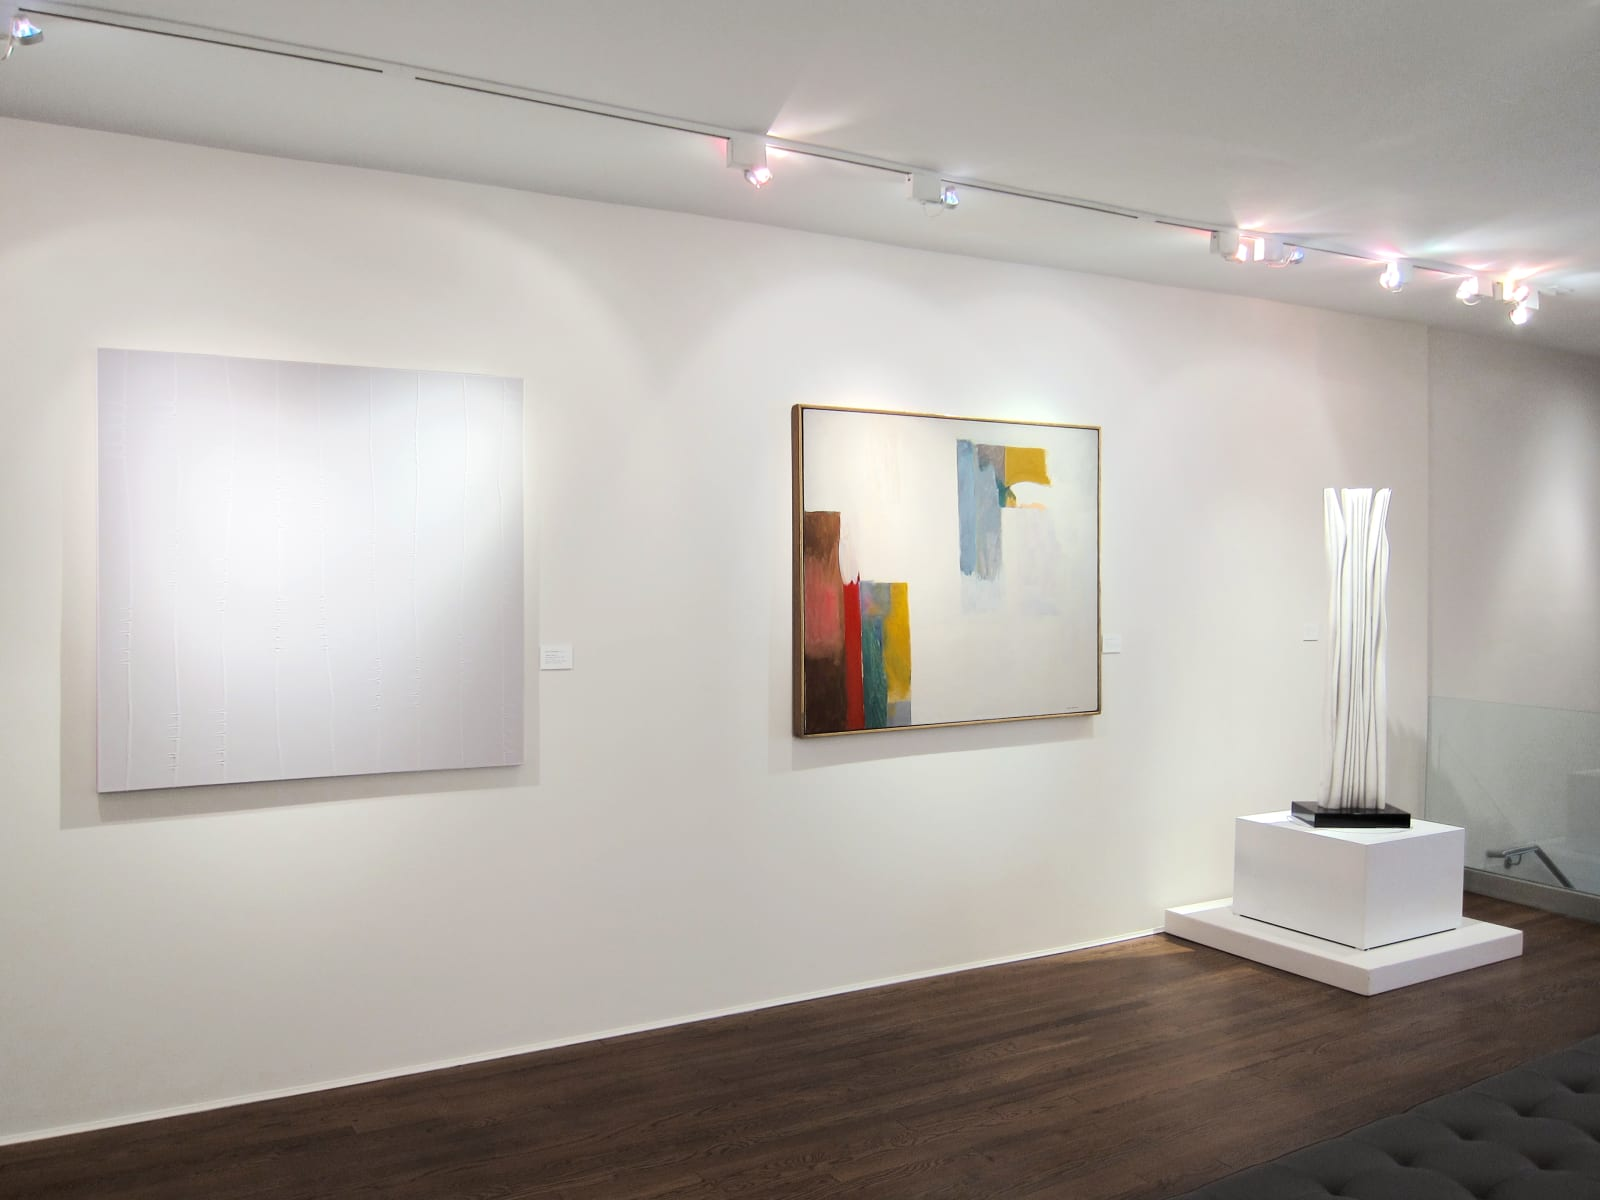 Installation view: Pulling at Polarities